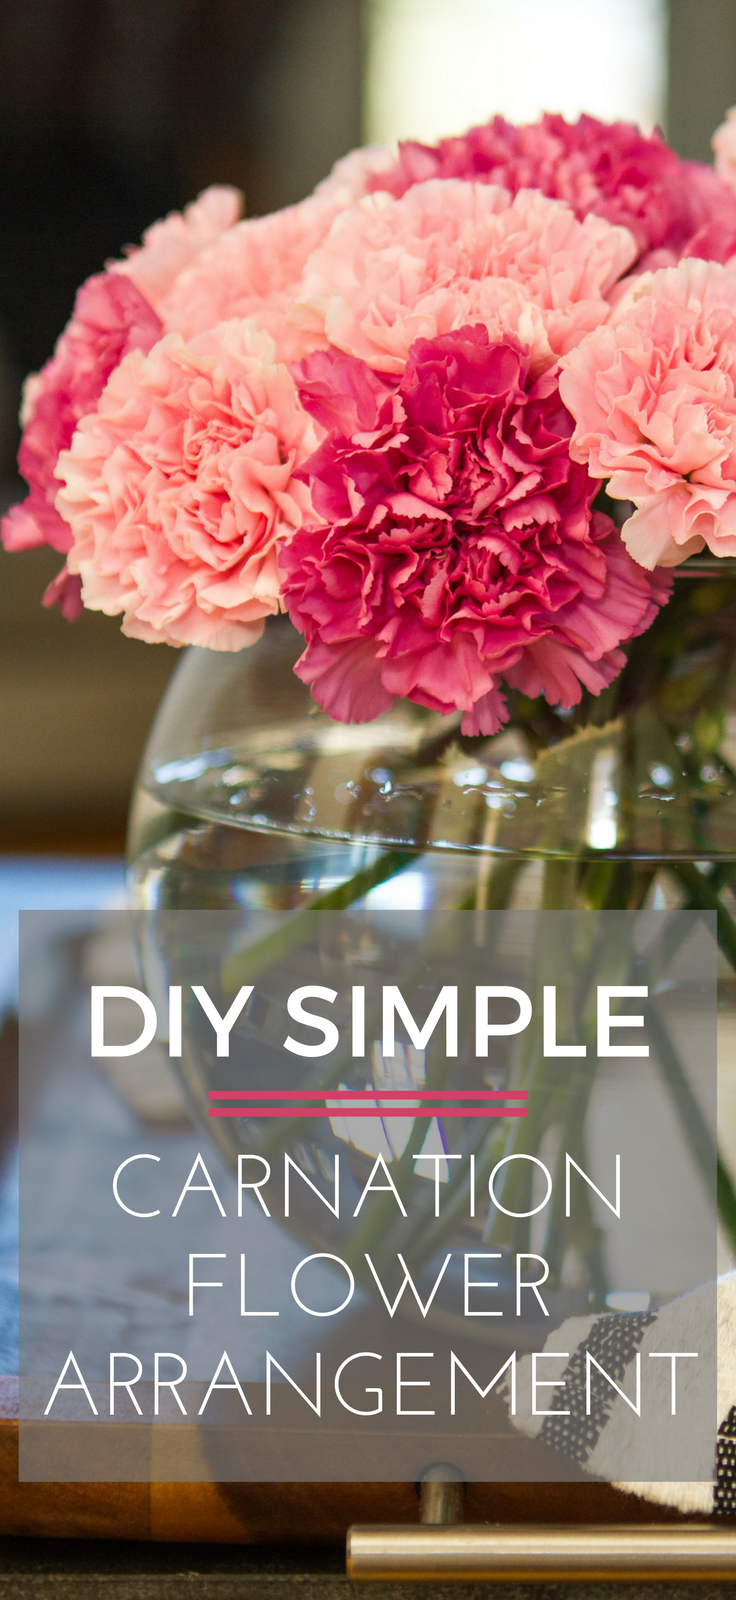 Simple Carnation Flower Arrangement -- this stunning DIY carnation flower arrangement requires only a pair of floral shears, a bubble vase, and about 5 minutes of time to create… It's nearly effortless and can last up to two weeks! | via @unsophisticook on unsophisticook.com